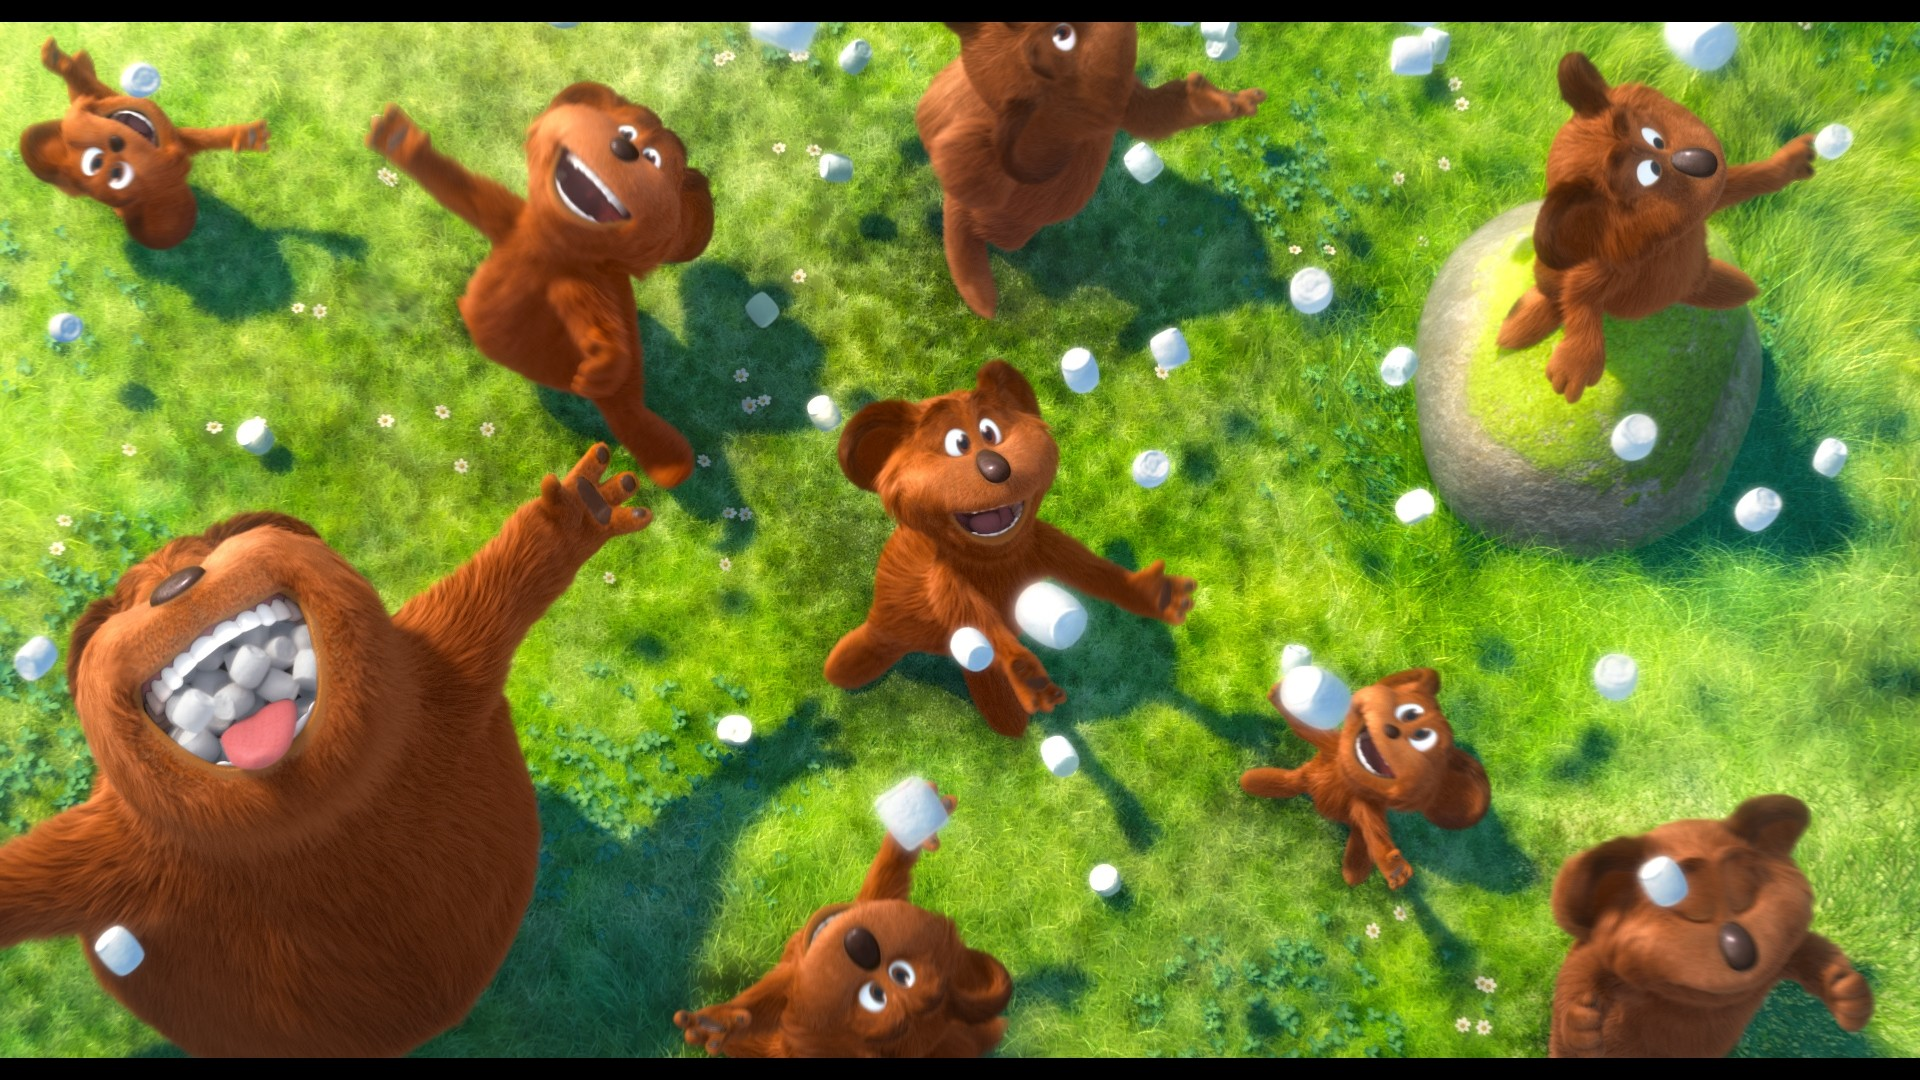 Res: 1920x1080, bears and raining marshmallows from Dr. Seuss The Lorax Movie 2012 wallpaper